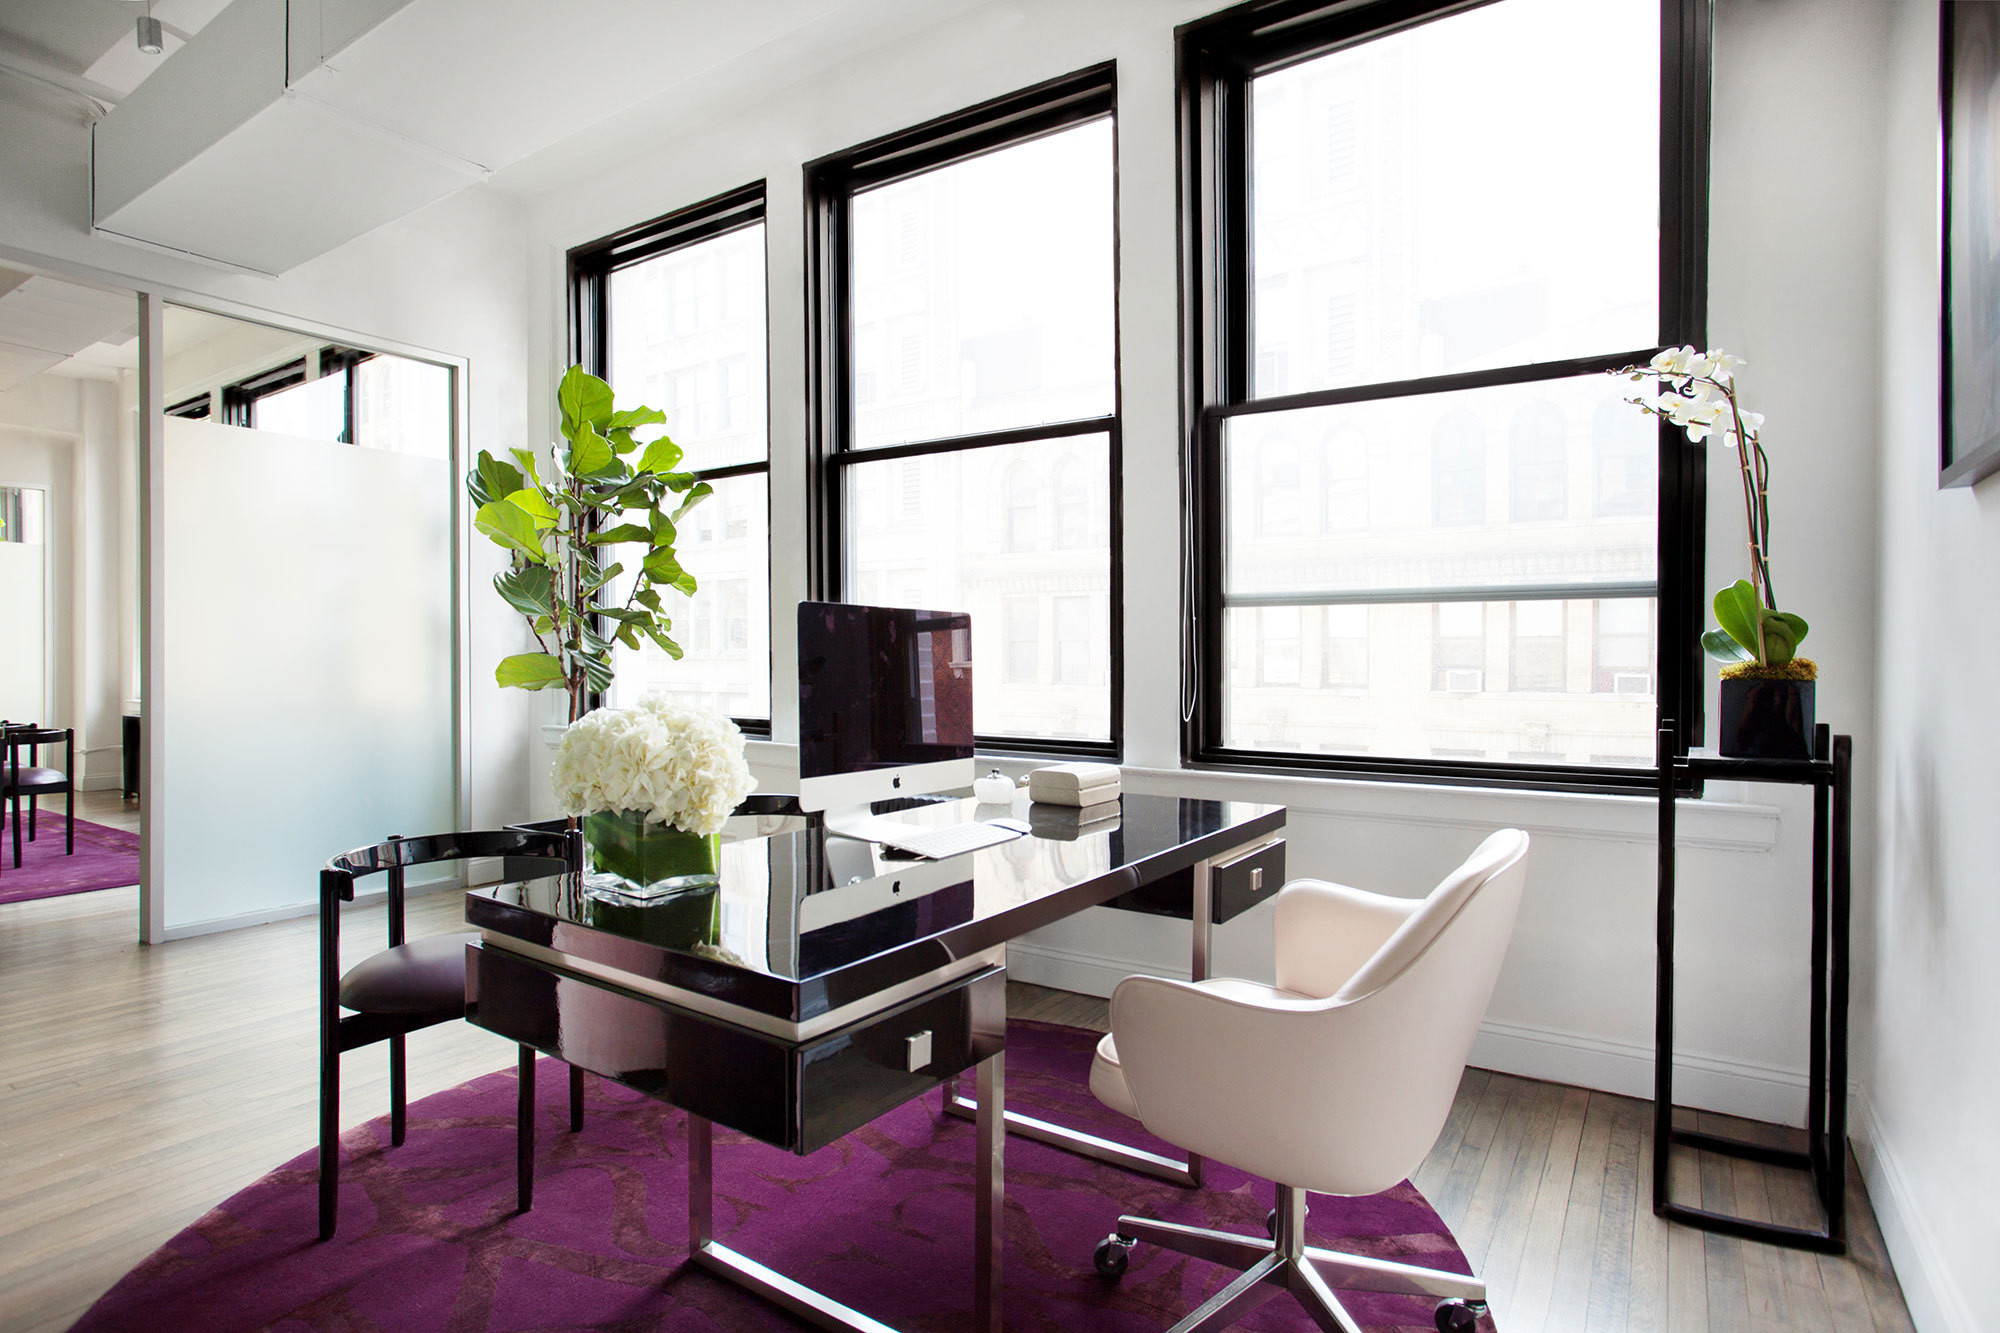 White orchids and roses add an elegant touch to the office's purple, black, and white surroundings.